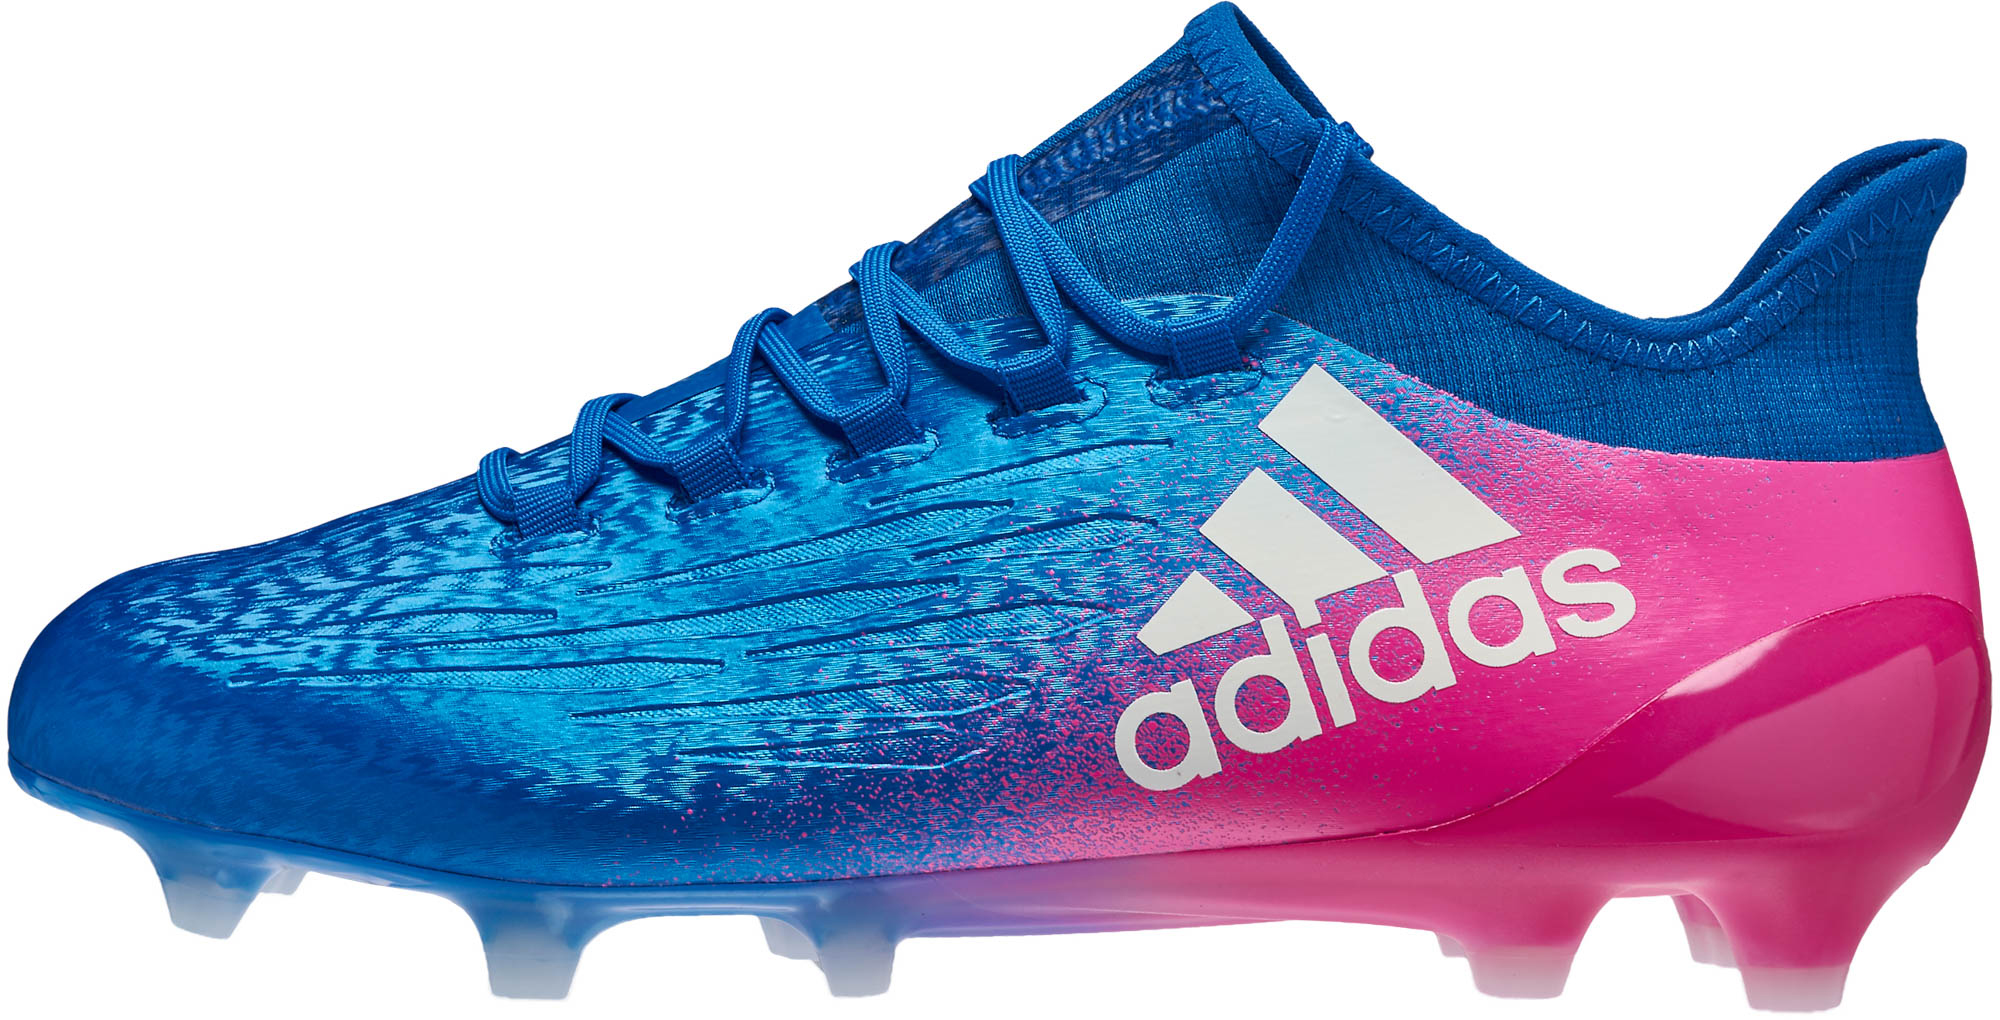 c6e82d4ed adidas X 16.1 FG Soccer Cleats - Blue   Shock Pink - Soccer Master